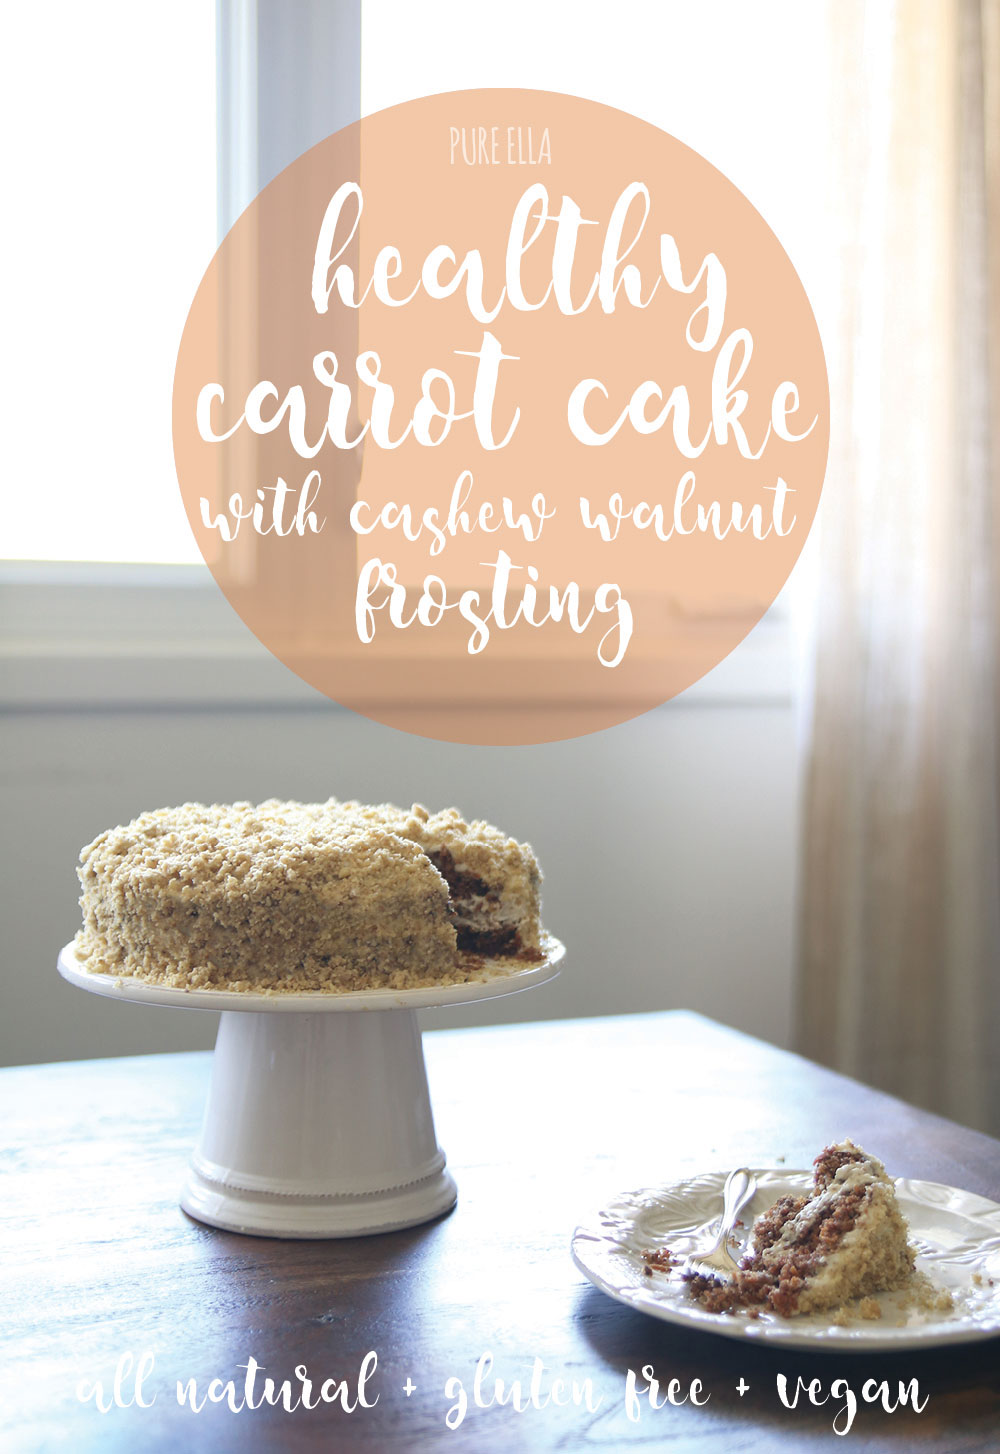 Healthy Carrot Cake With Cashew Walnut Frosting